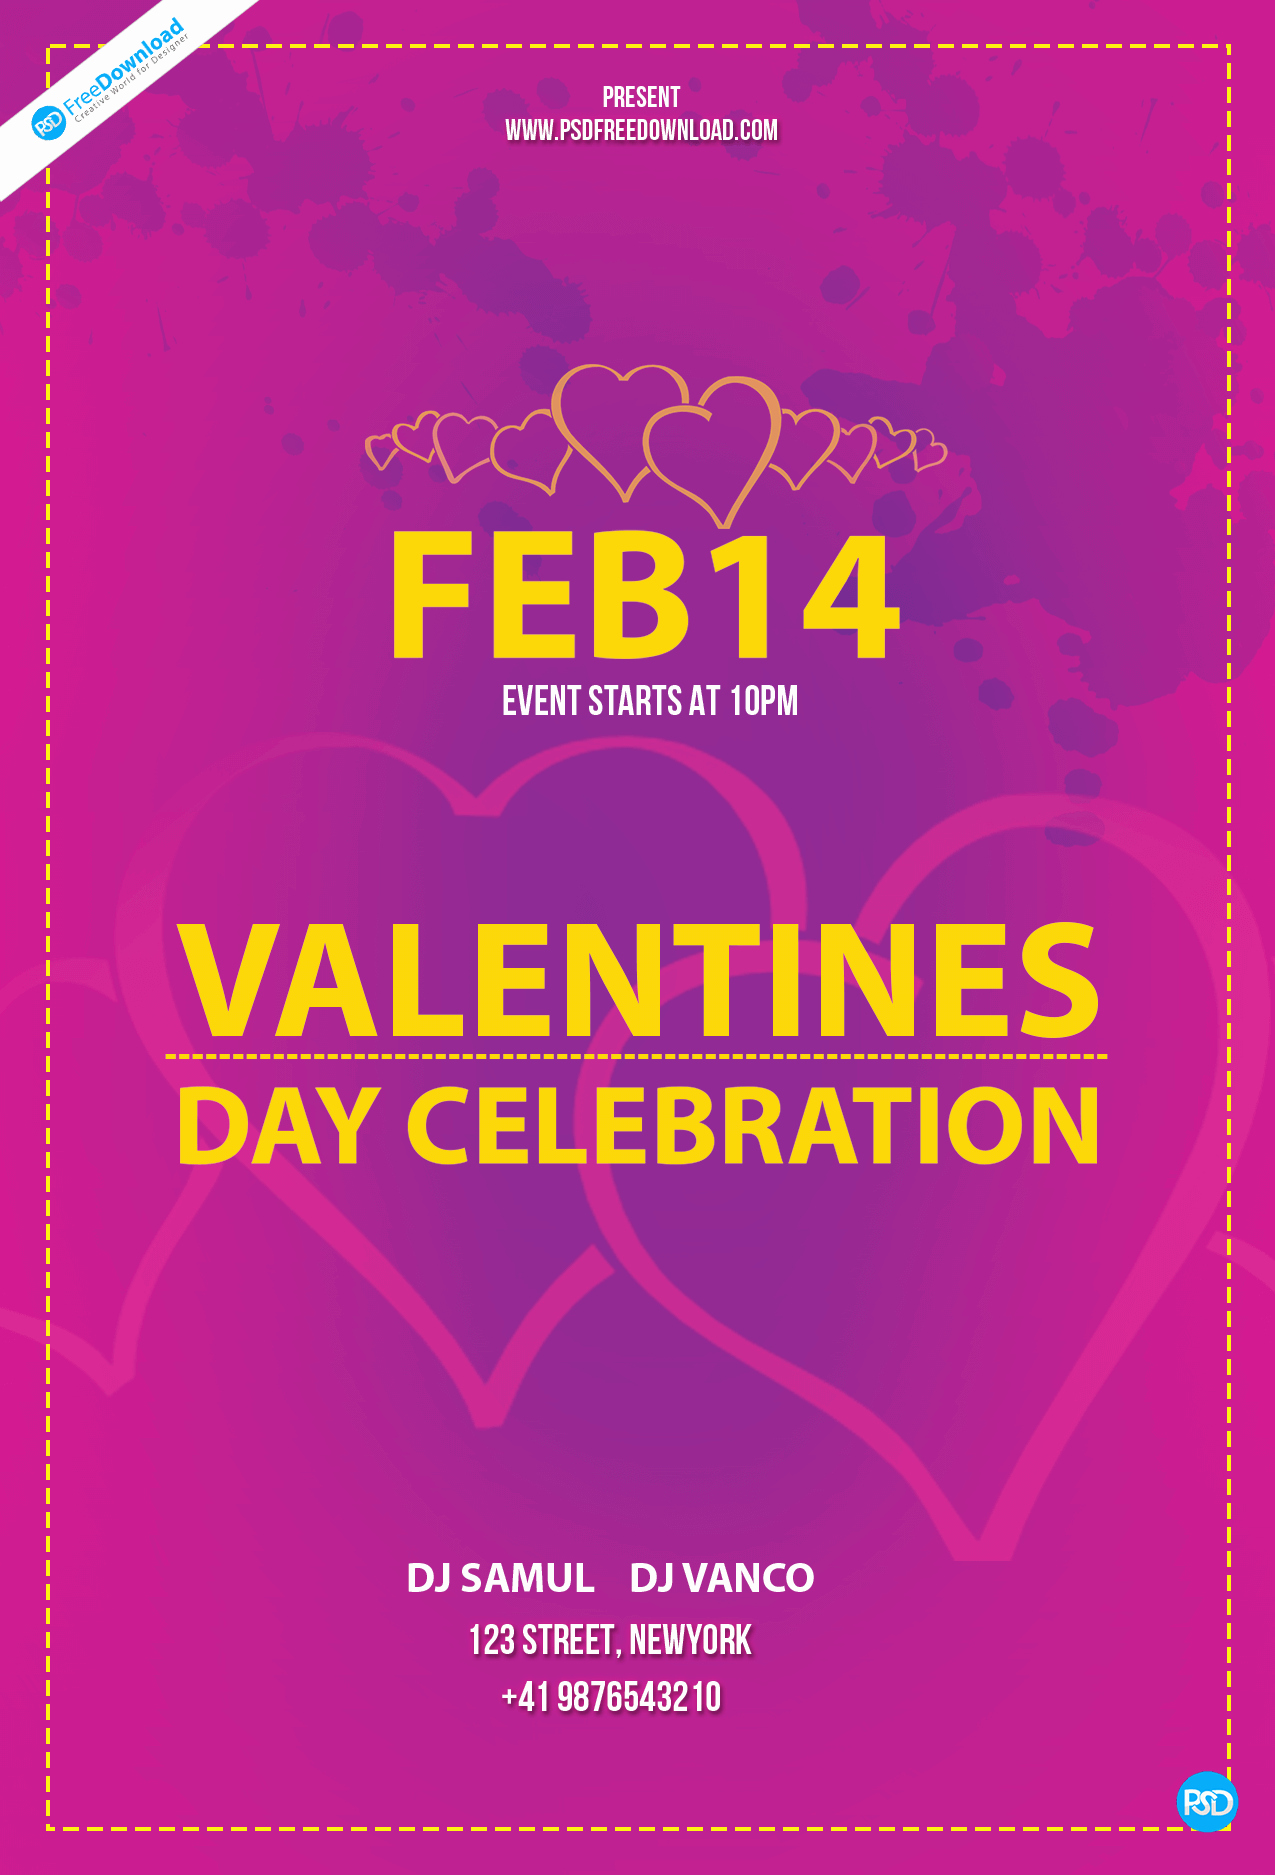 Valentines Day Flyer Template Free Beautiful Free Valentines Day Flyer Template